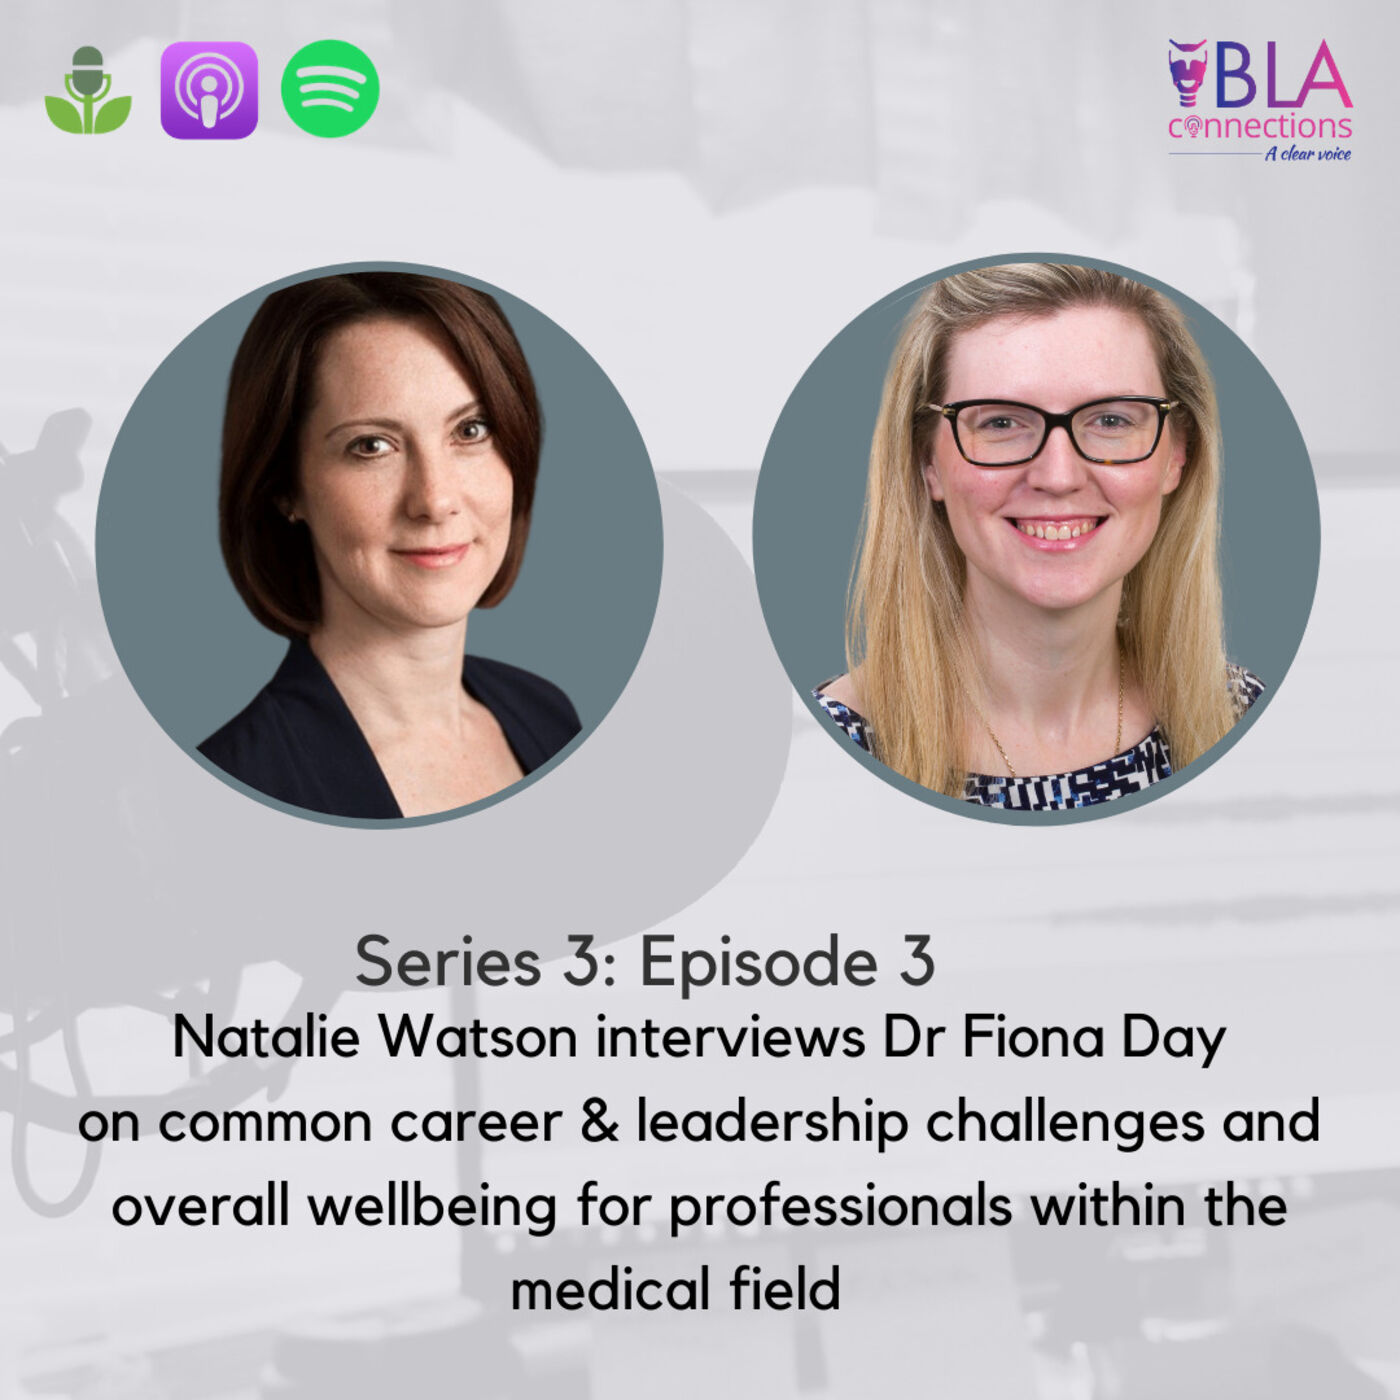 S3 Ep 3: Wellbeing with Dr Fiona Day